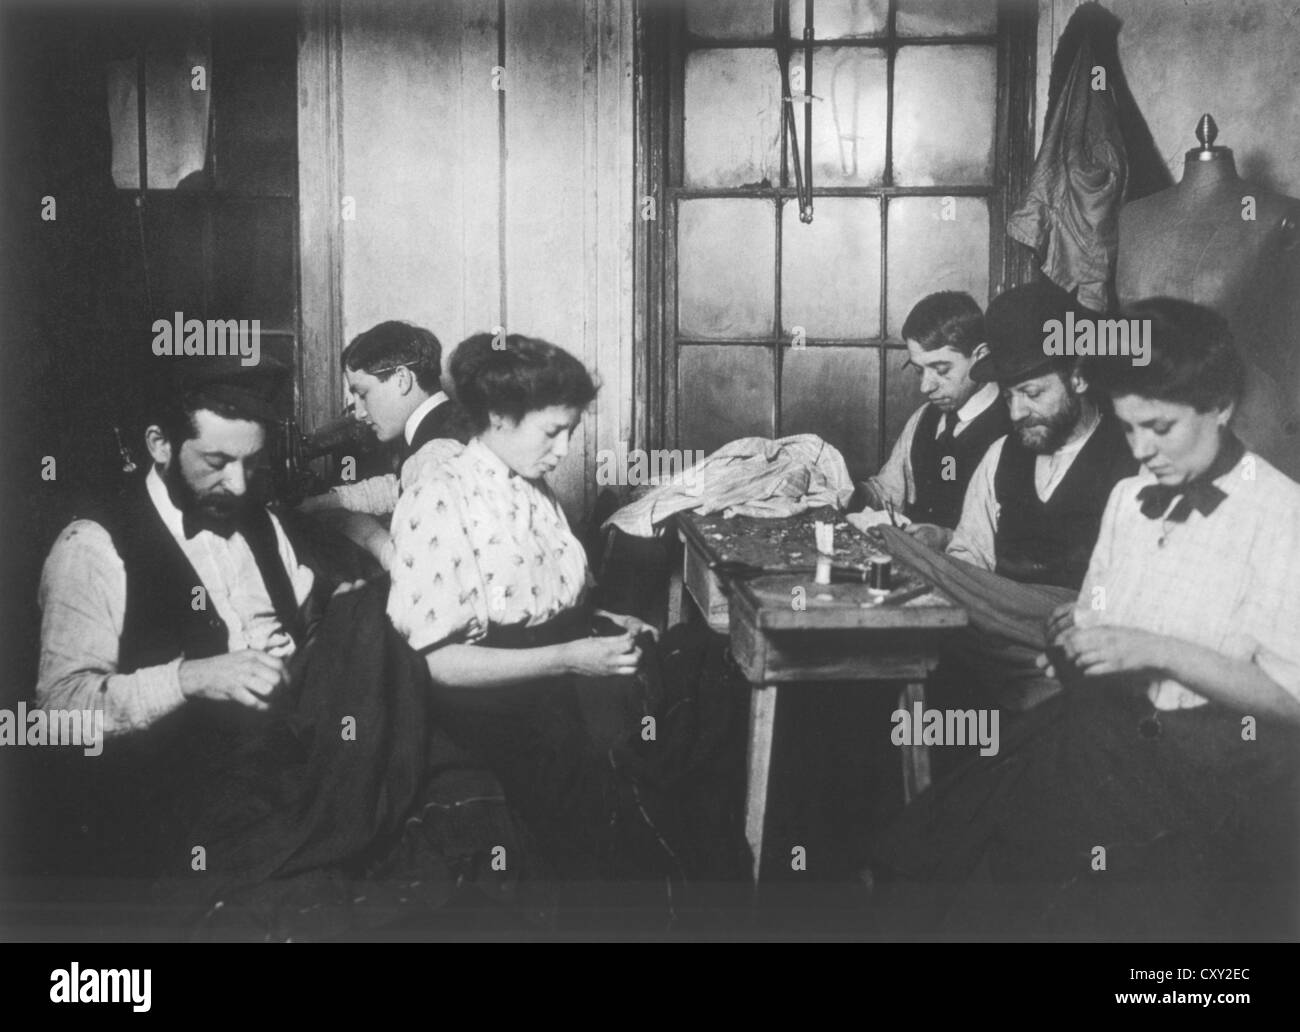 Workers in Sweatshop, New York City, USA, Circa 1908 - Stock Image